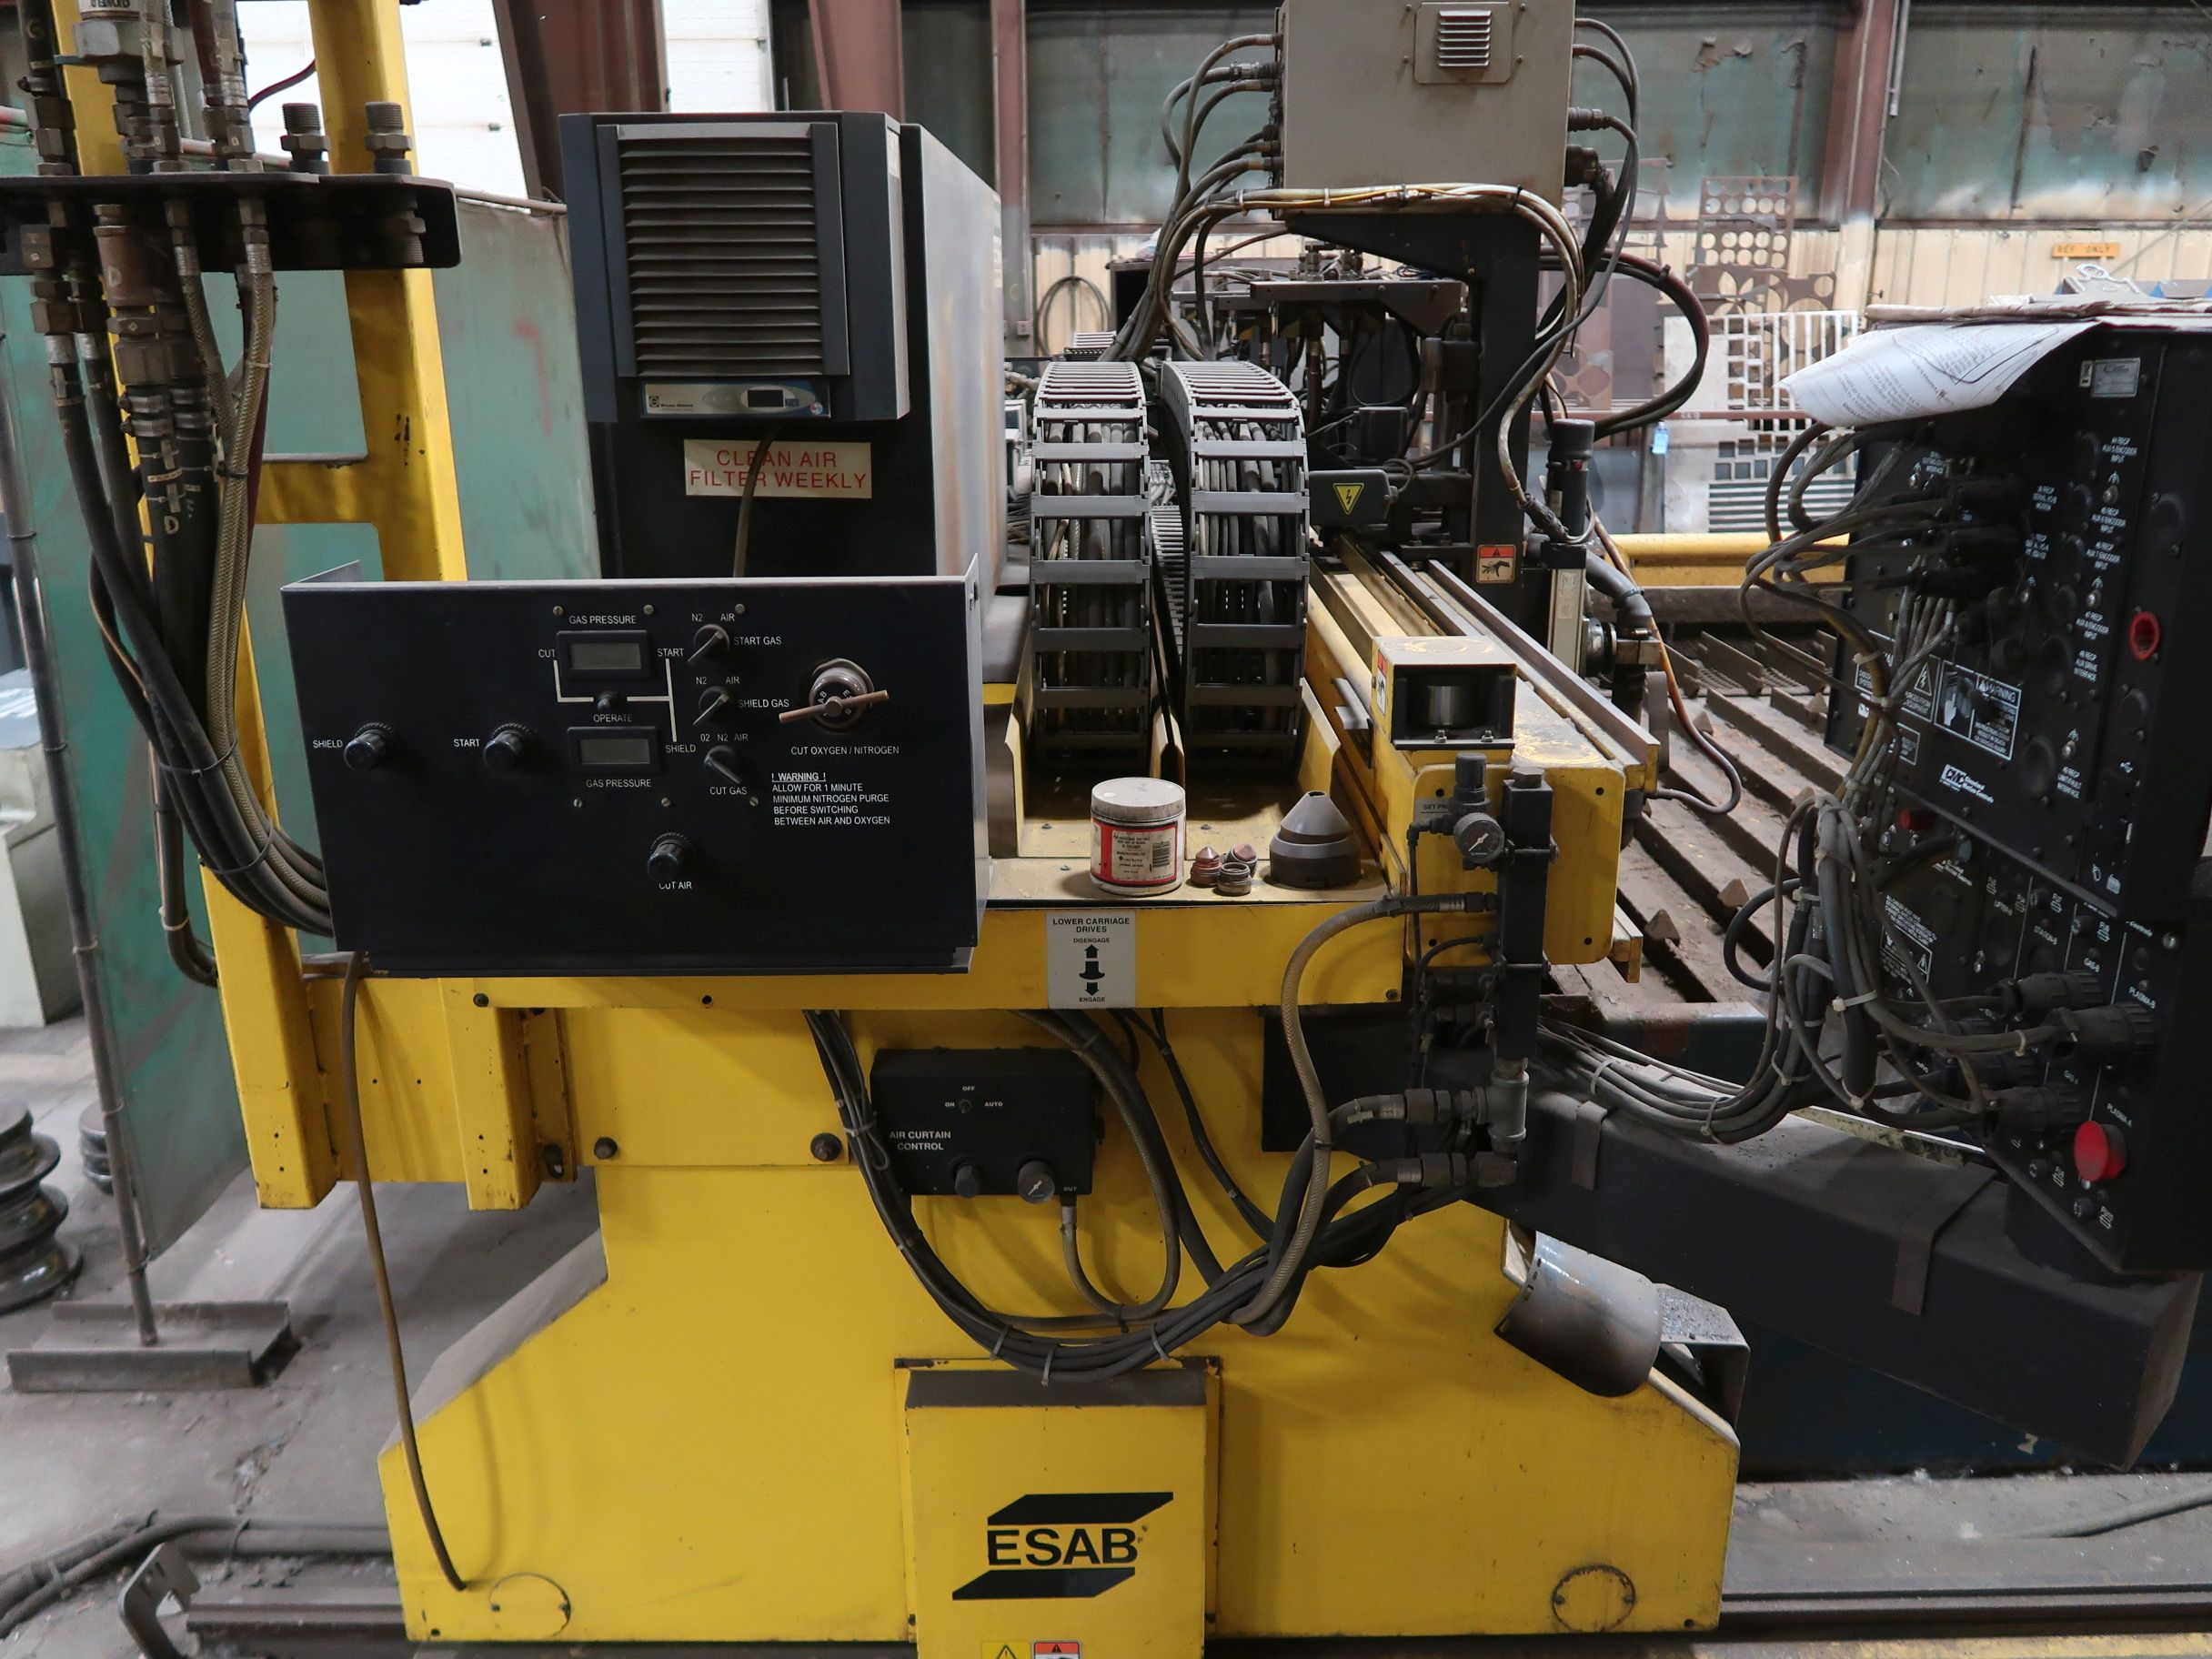 12' X 40' ESAB MODEL AVENGER 1-12 VISION PLASMA TABLE W/ BURNY 10 CONTROL; S/N 0560986386, UPDATED - Image 11 of 23